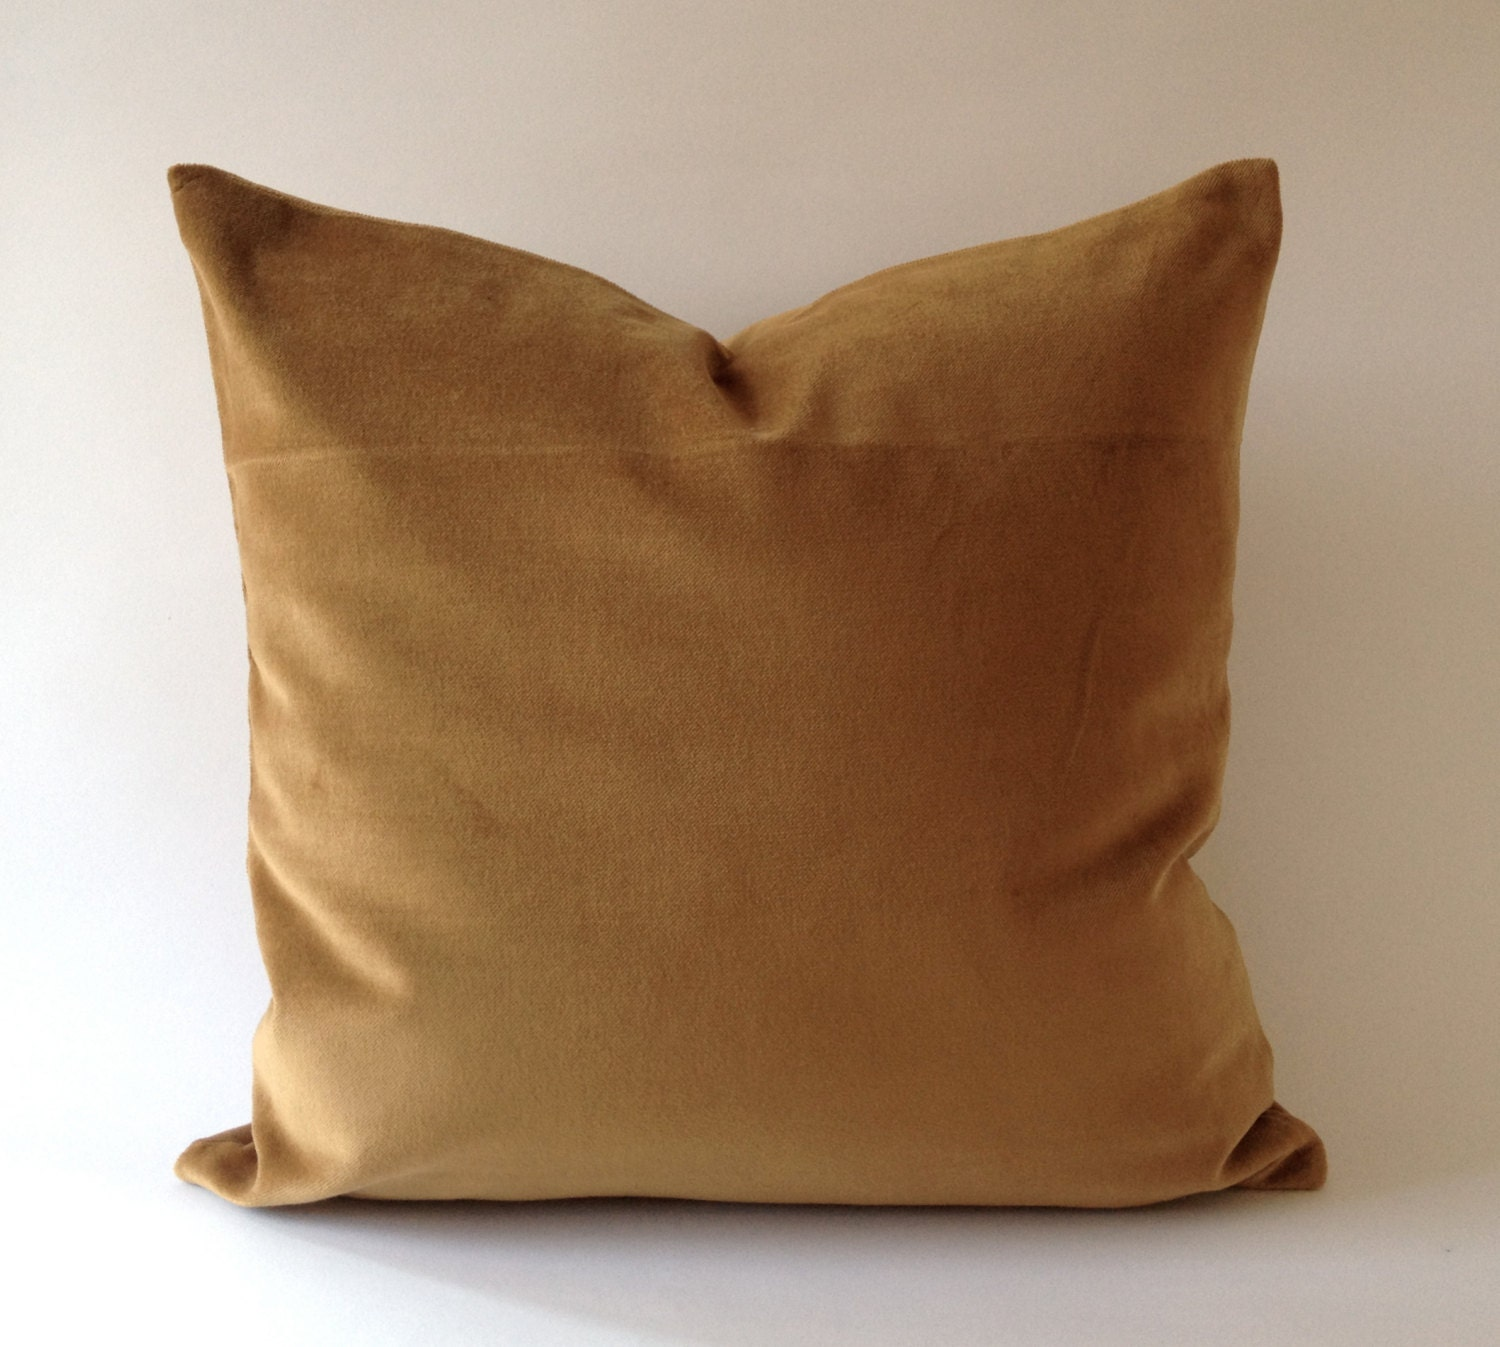 Decorative Pillow Brown : Camel Brown Cotton Velvet Pillow Cover Decorative Accent